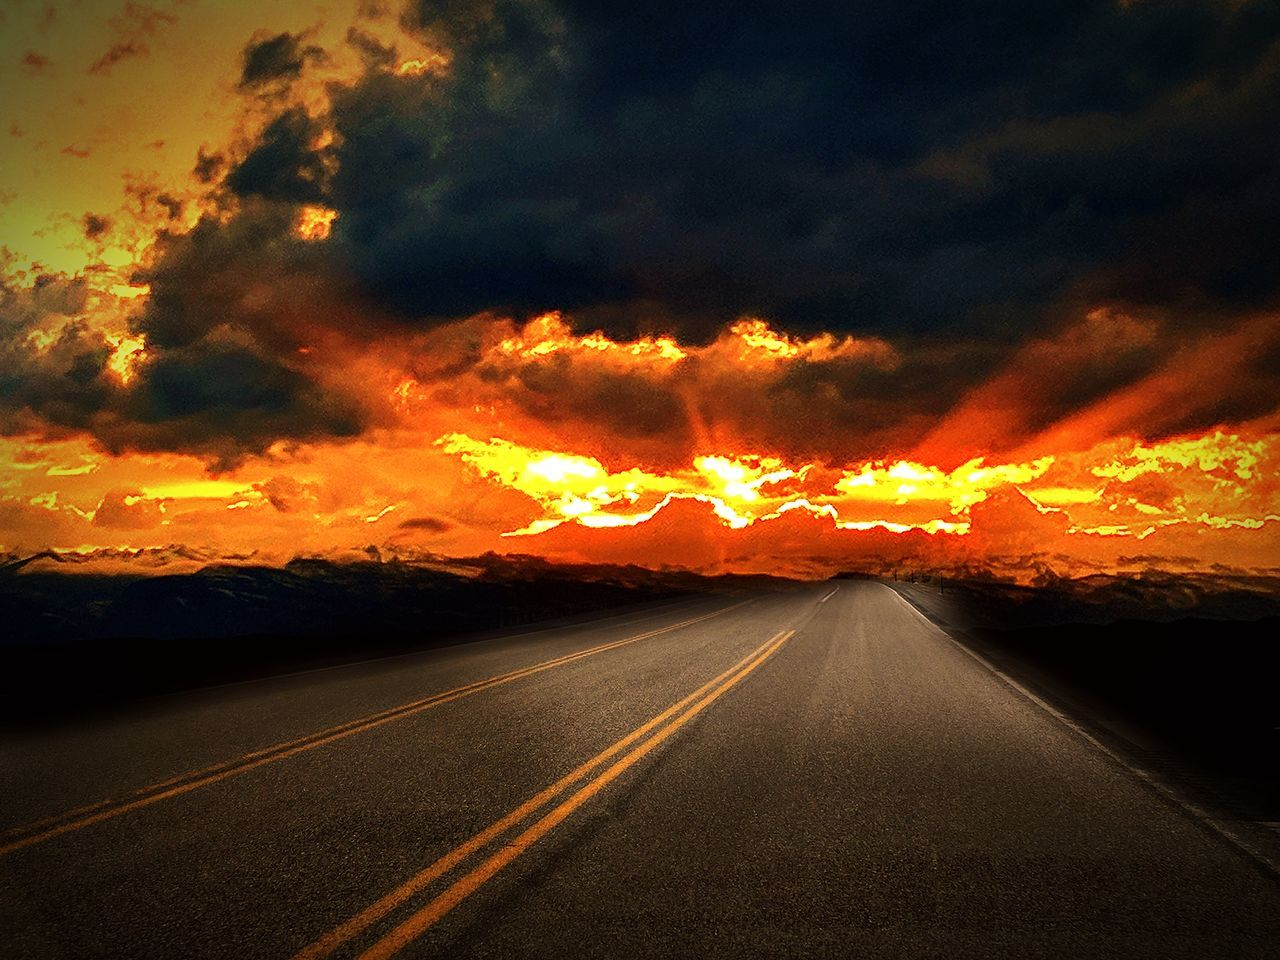 Sunset Road Landscape Outdoors Nature The Way Forward Scenics Rural Scene Beauty In Nature No People Night Cloud - Sky Horizon Transportation Sky Panoramic First Eyeem Photo